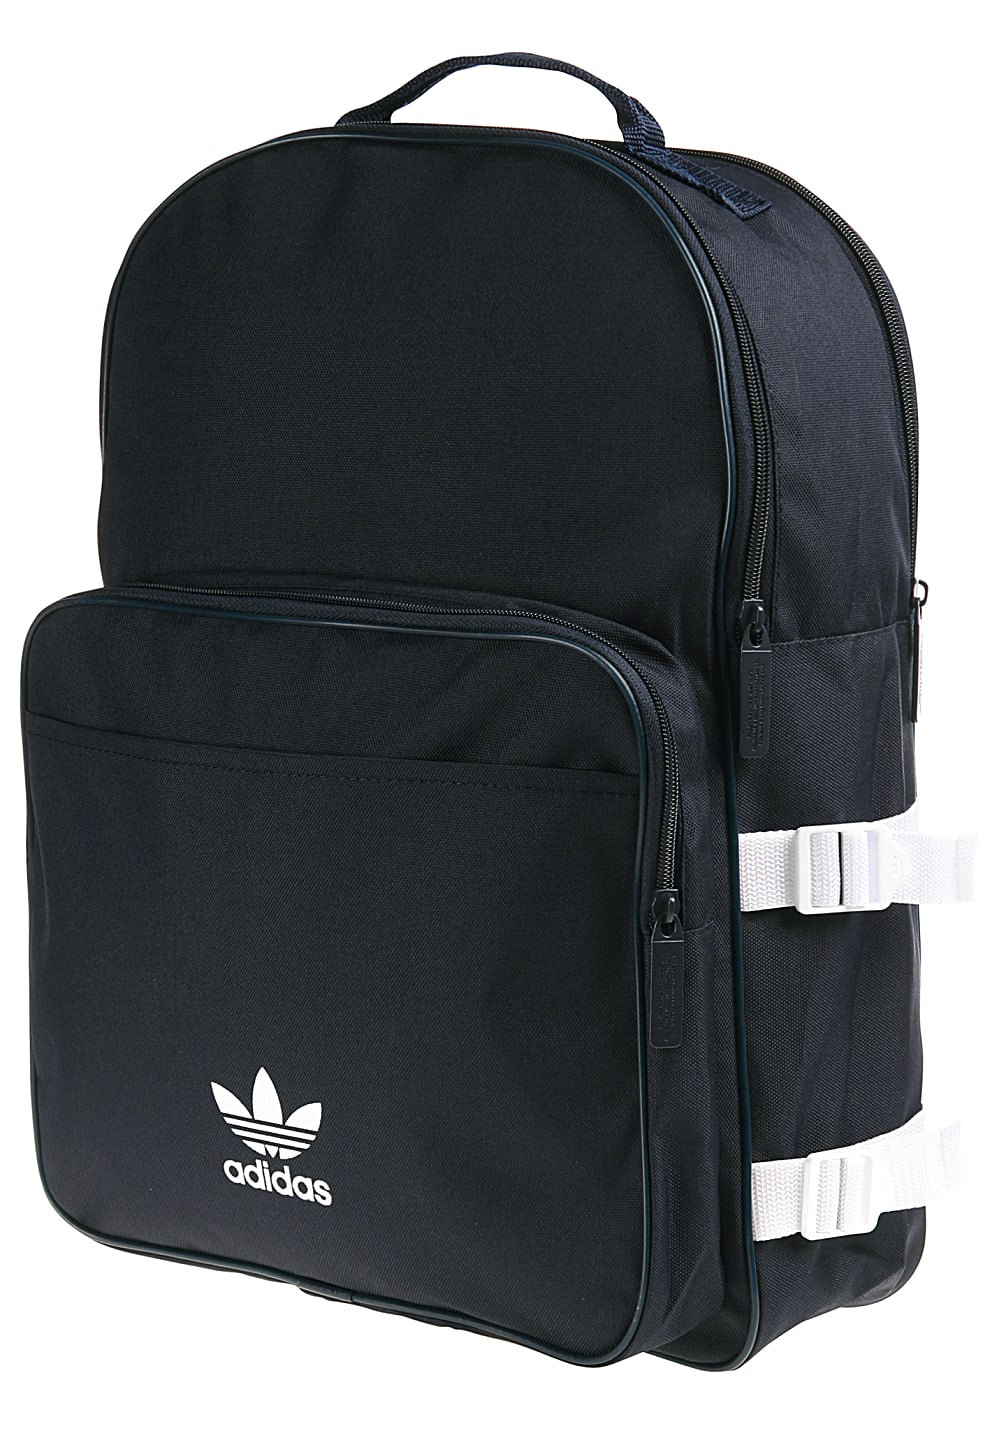 ADIDAS ORIGINALS Essential - Backpack - Blue - Planet Sports fd2bb0ecc8